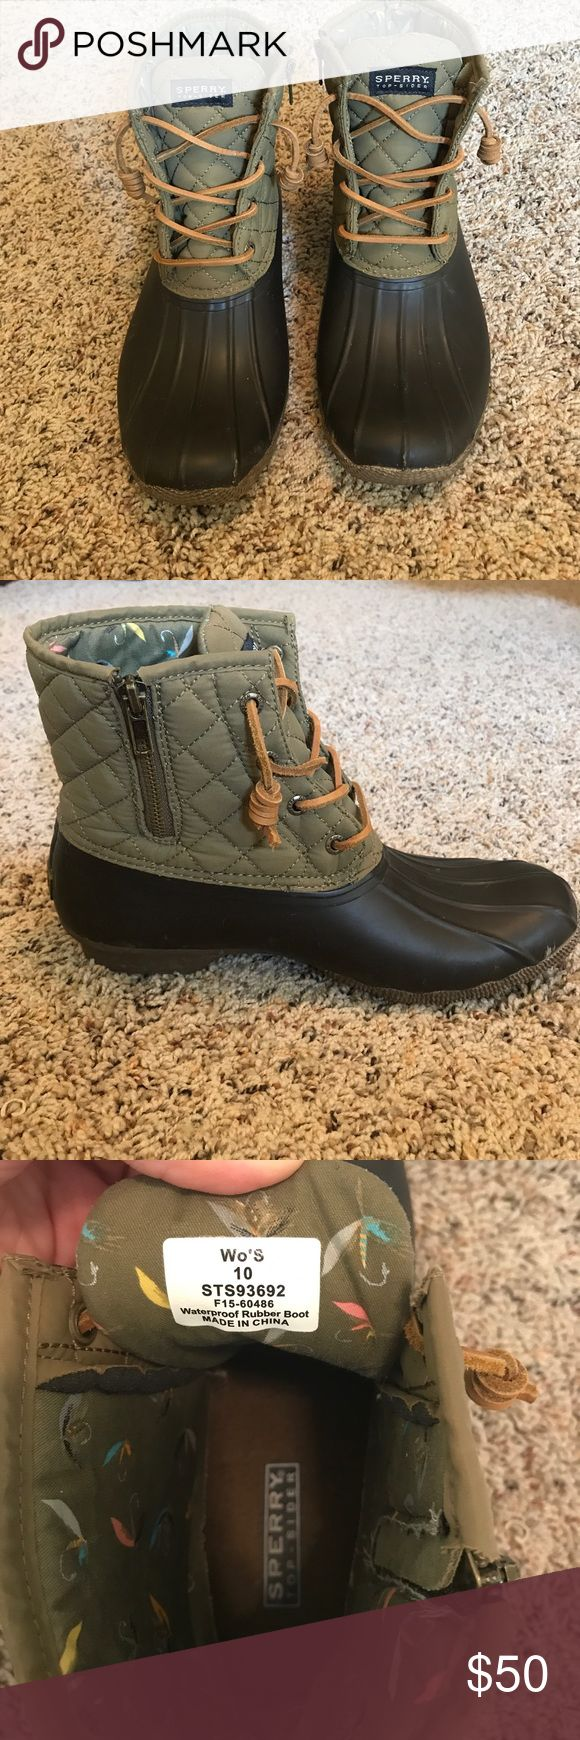 Sperry Duck Boots Sperry Duck Boots. Worn only a few times. Excellent condition! Sperry Shoes Winter & Rain Boots